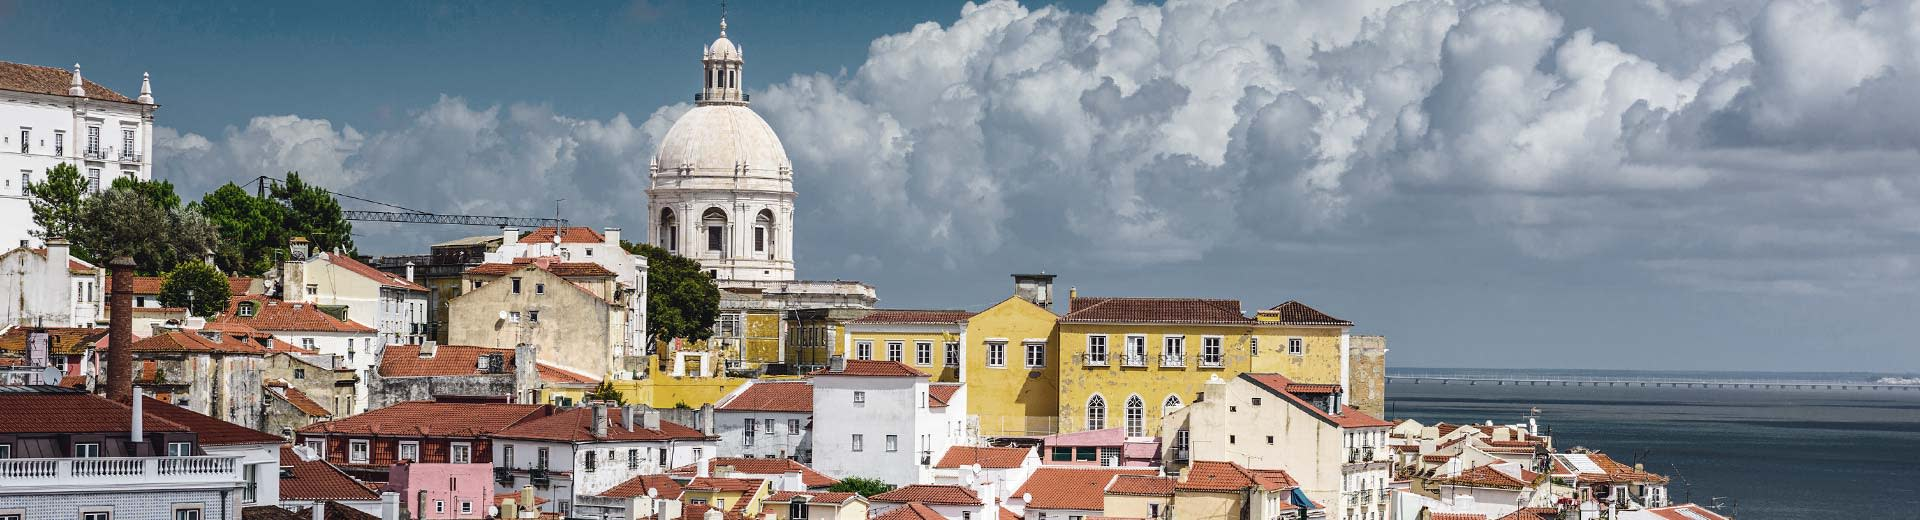 The pastel colored buildigns of Lisbon set against a cloudy sky